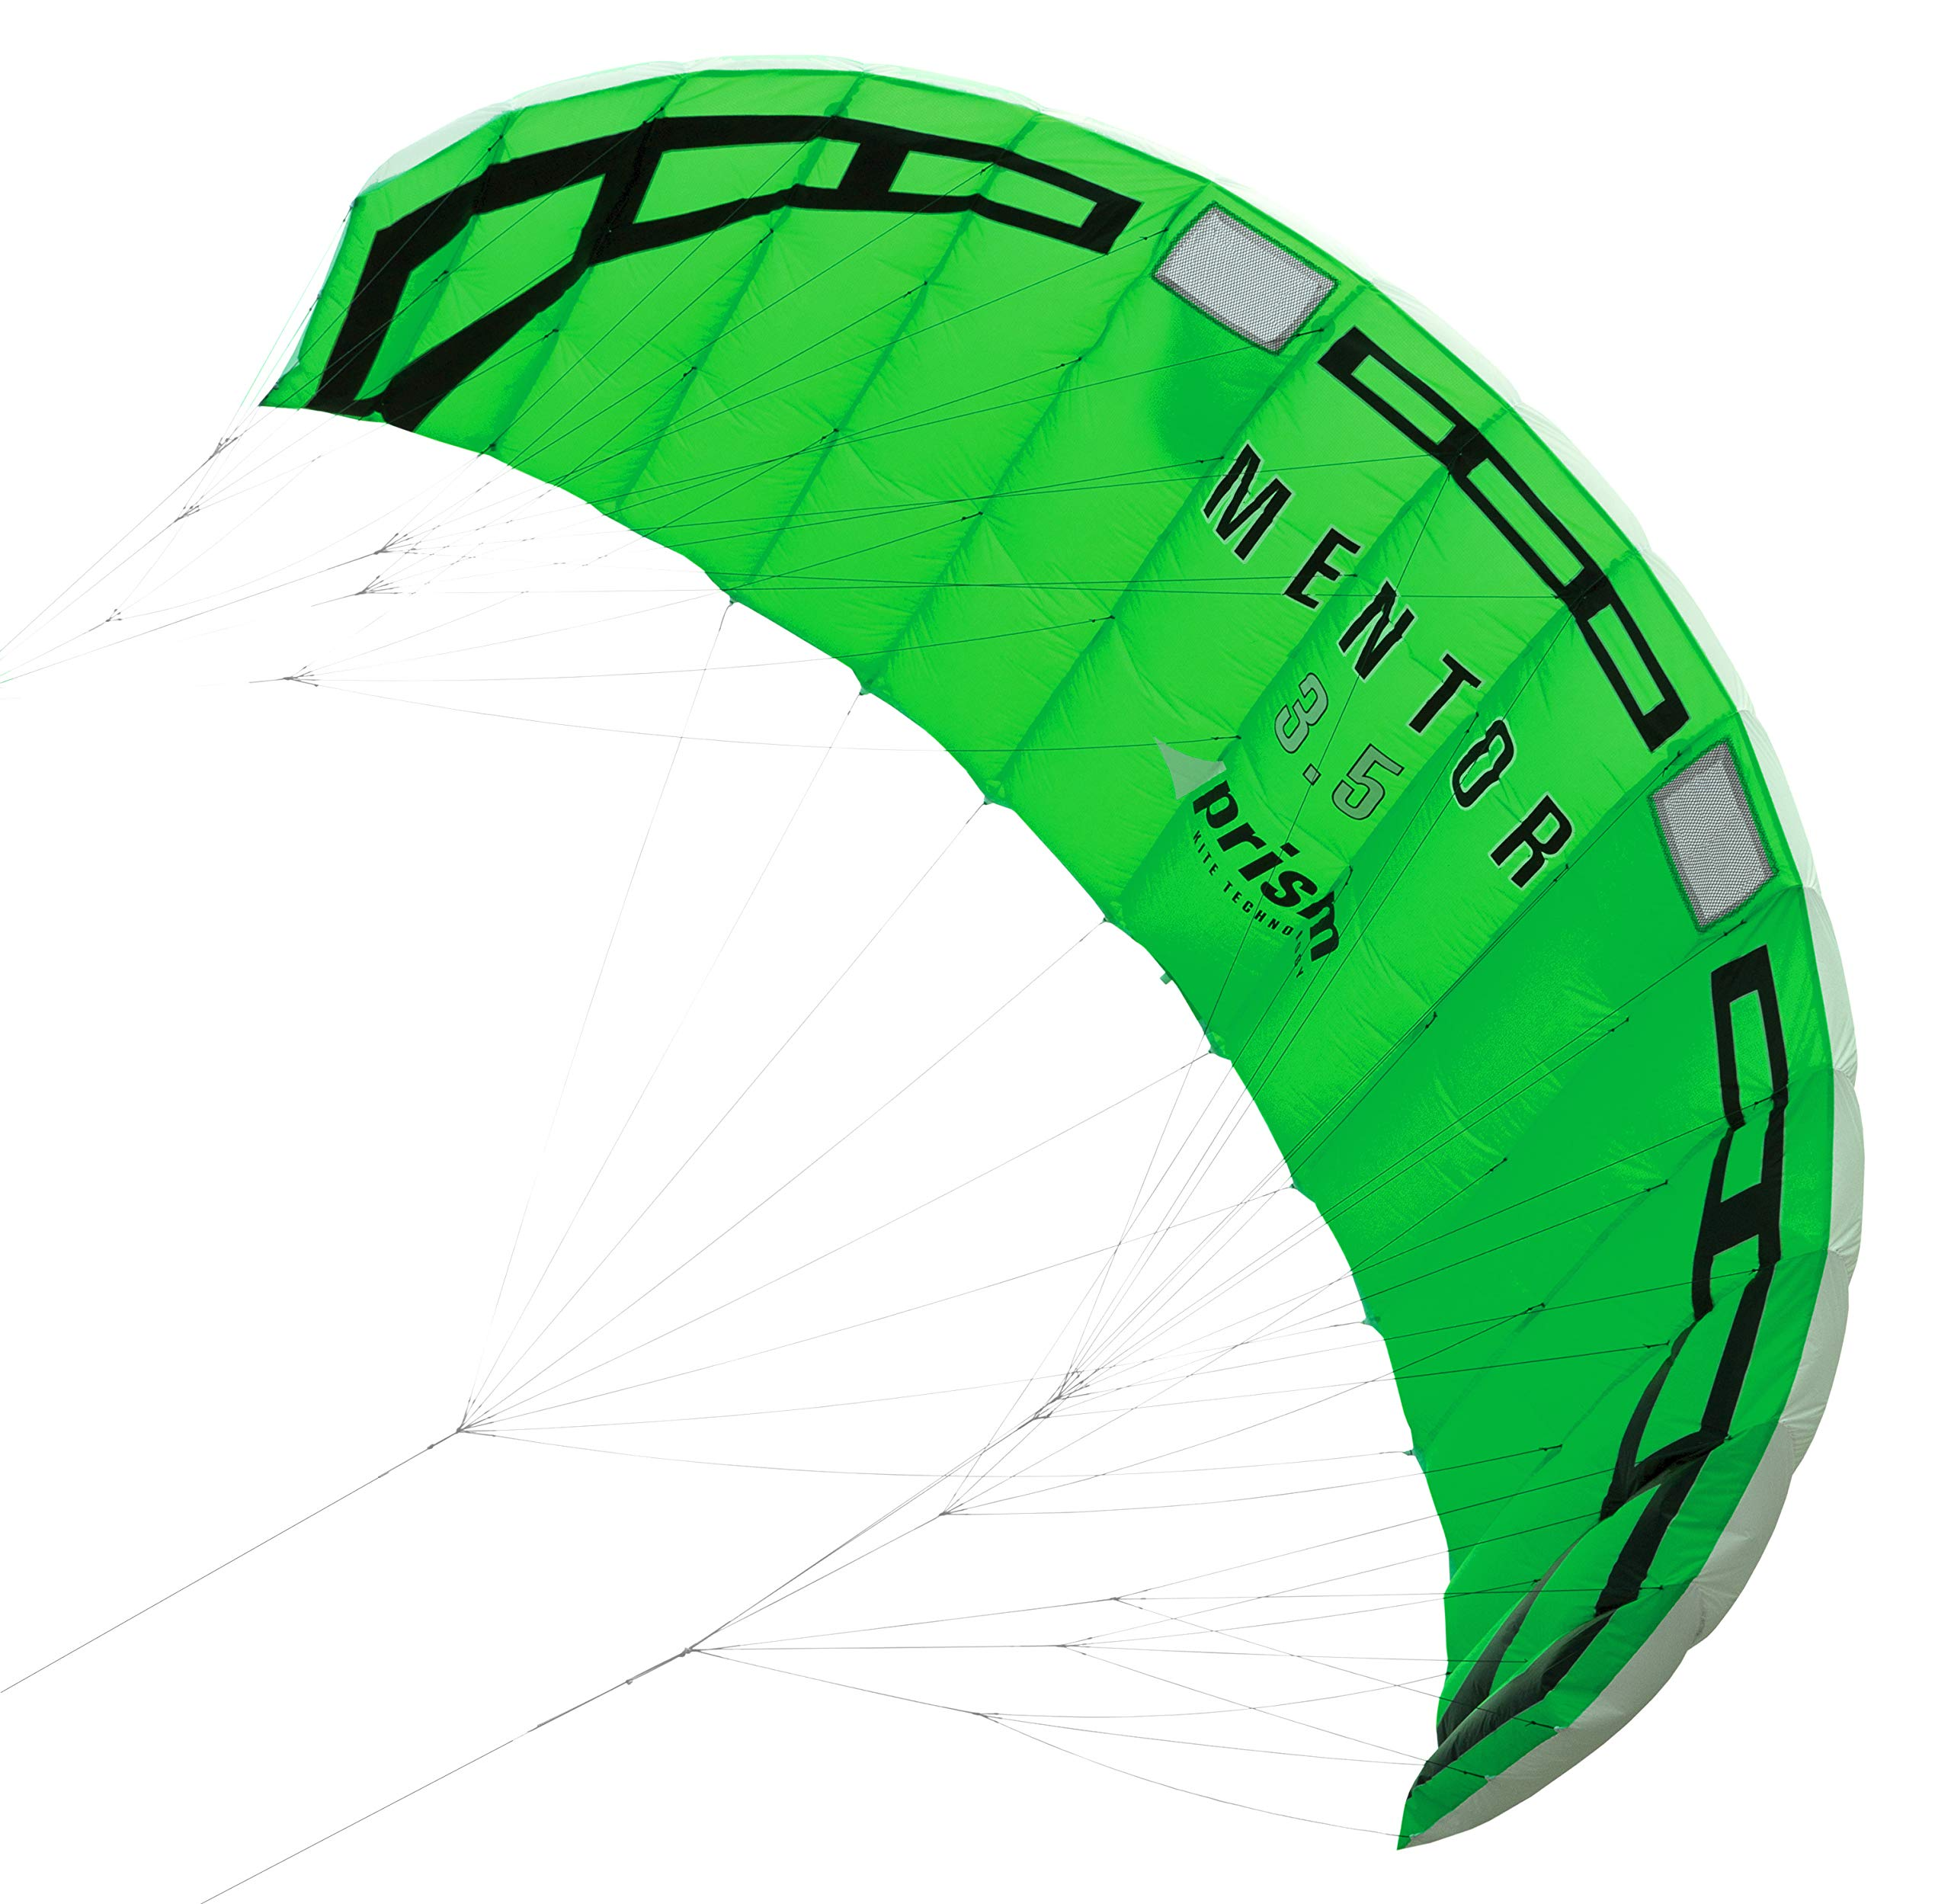 Prism Mentor 3.5m Water-relaunchable Three-line Power Kite Ready to Fly with Control bar, Ground Stake and Quick Release Safety Leash by Prism Kite Technology